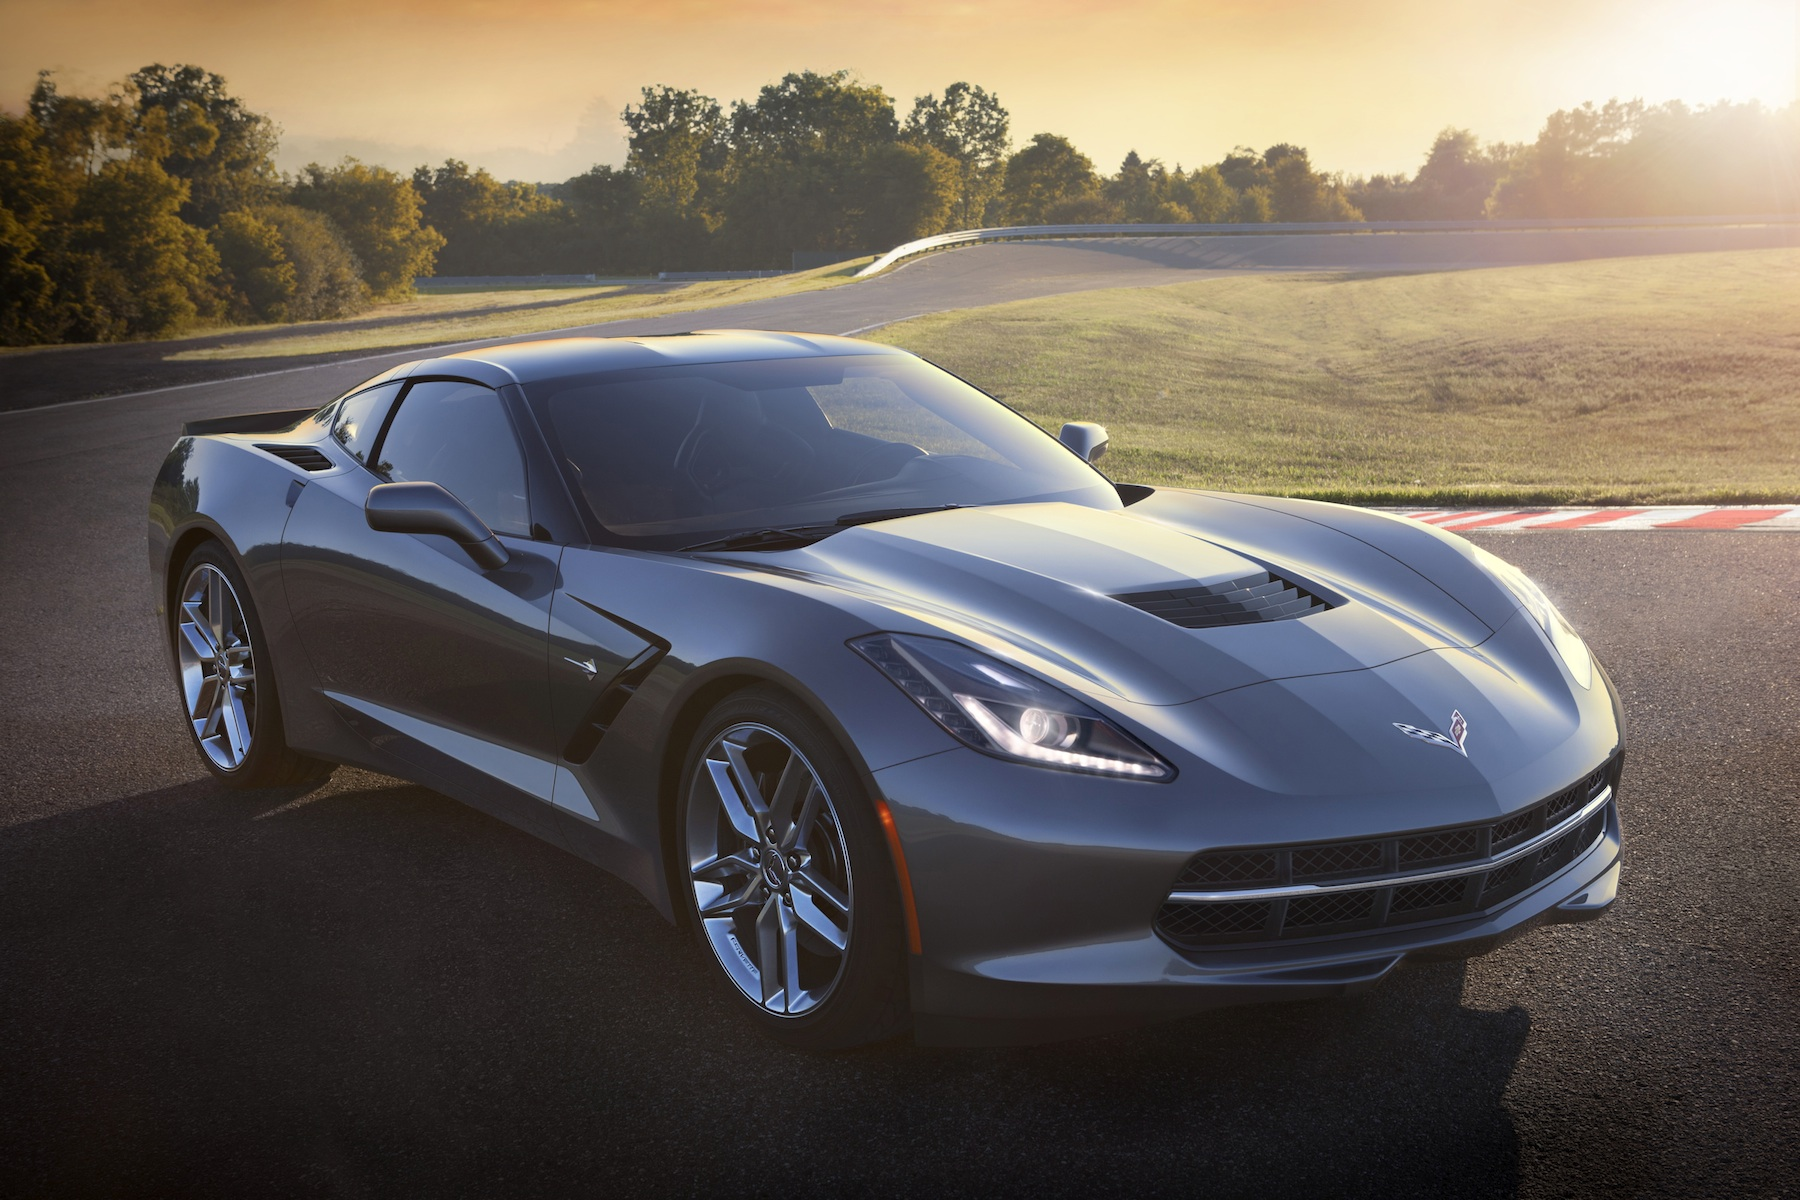 Chevrolet Corvette C7 Stingray - Return of a legend